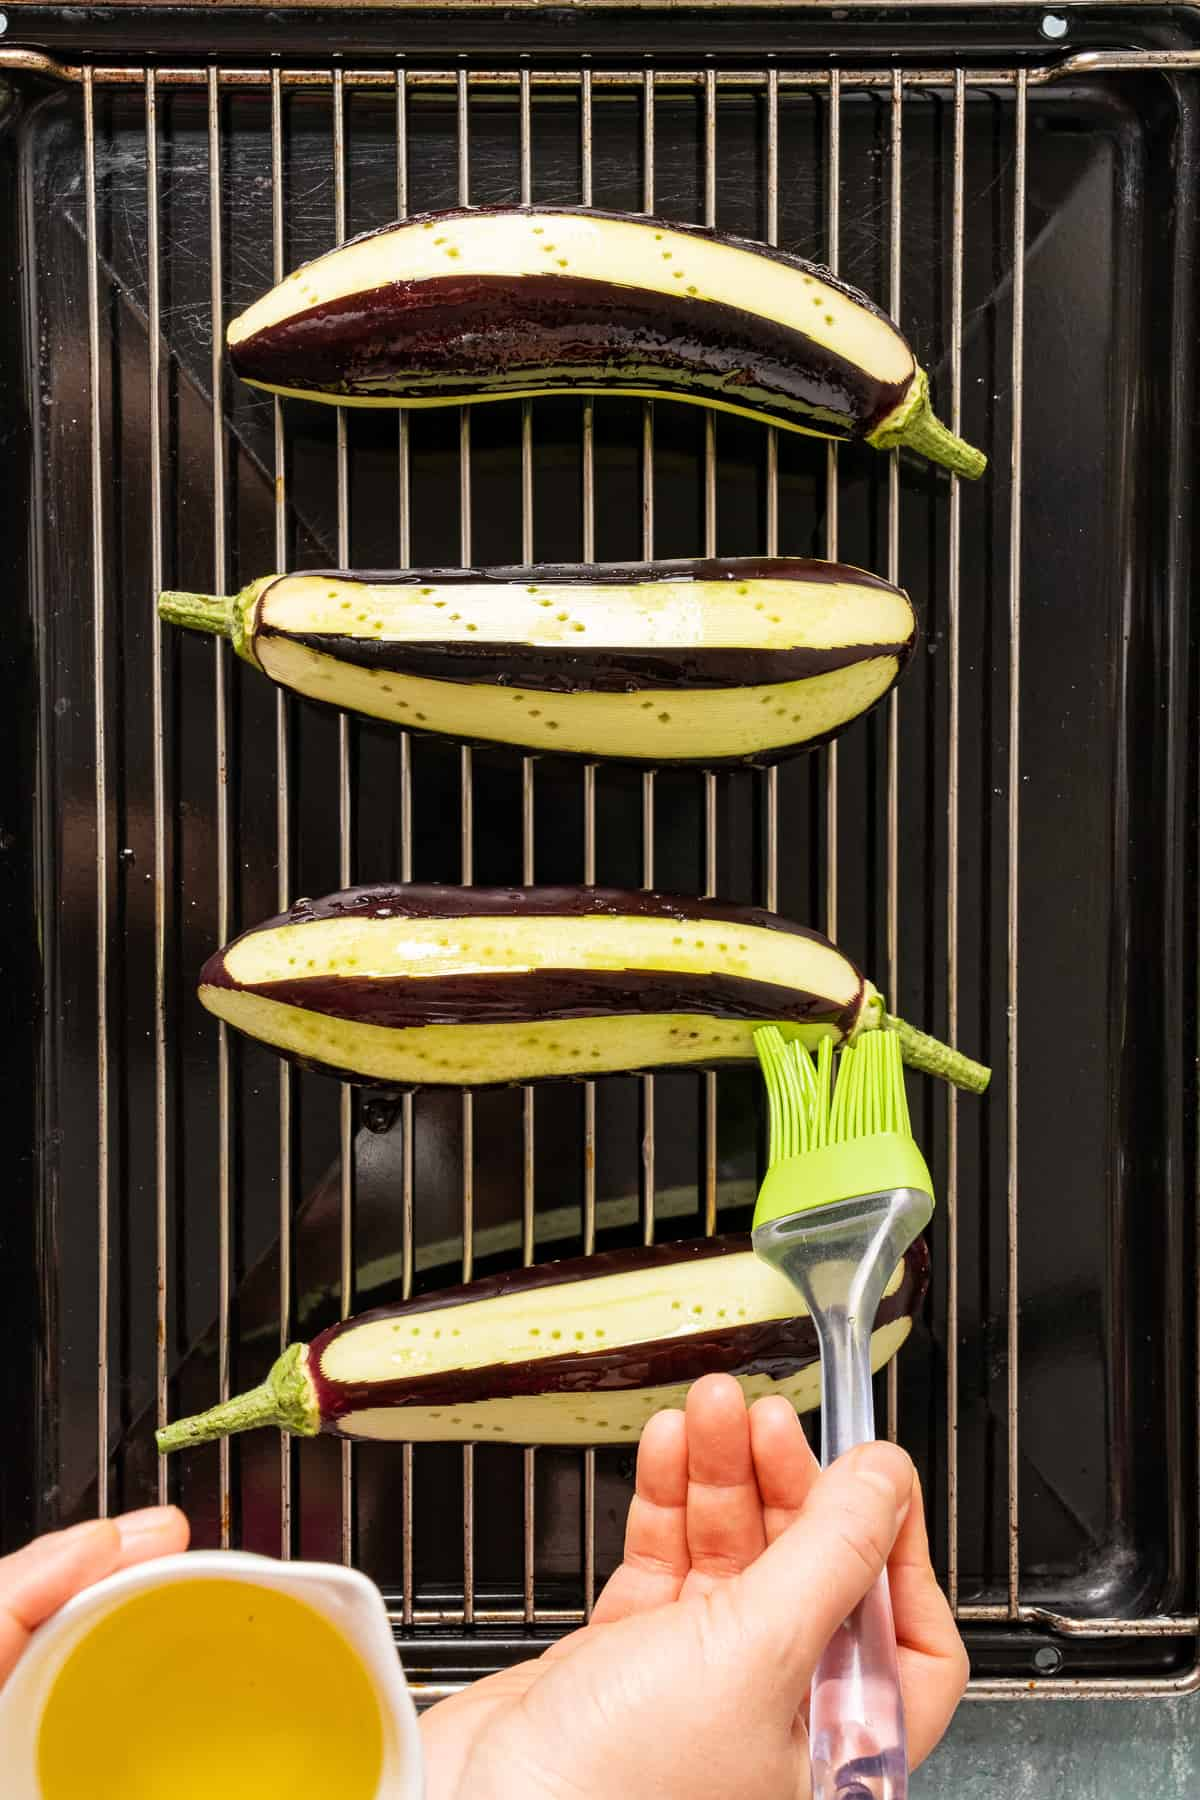 Hands oiling eggplants on a grilling rack with a brush.